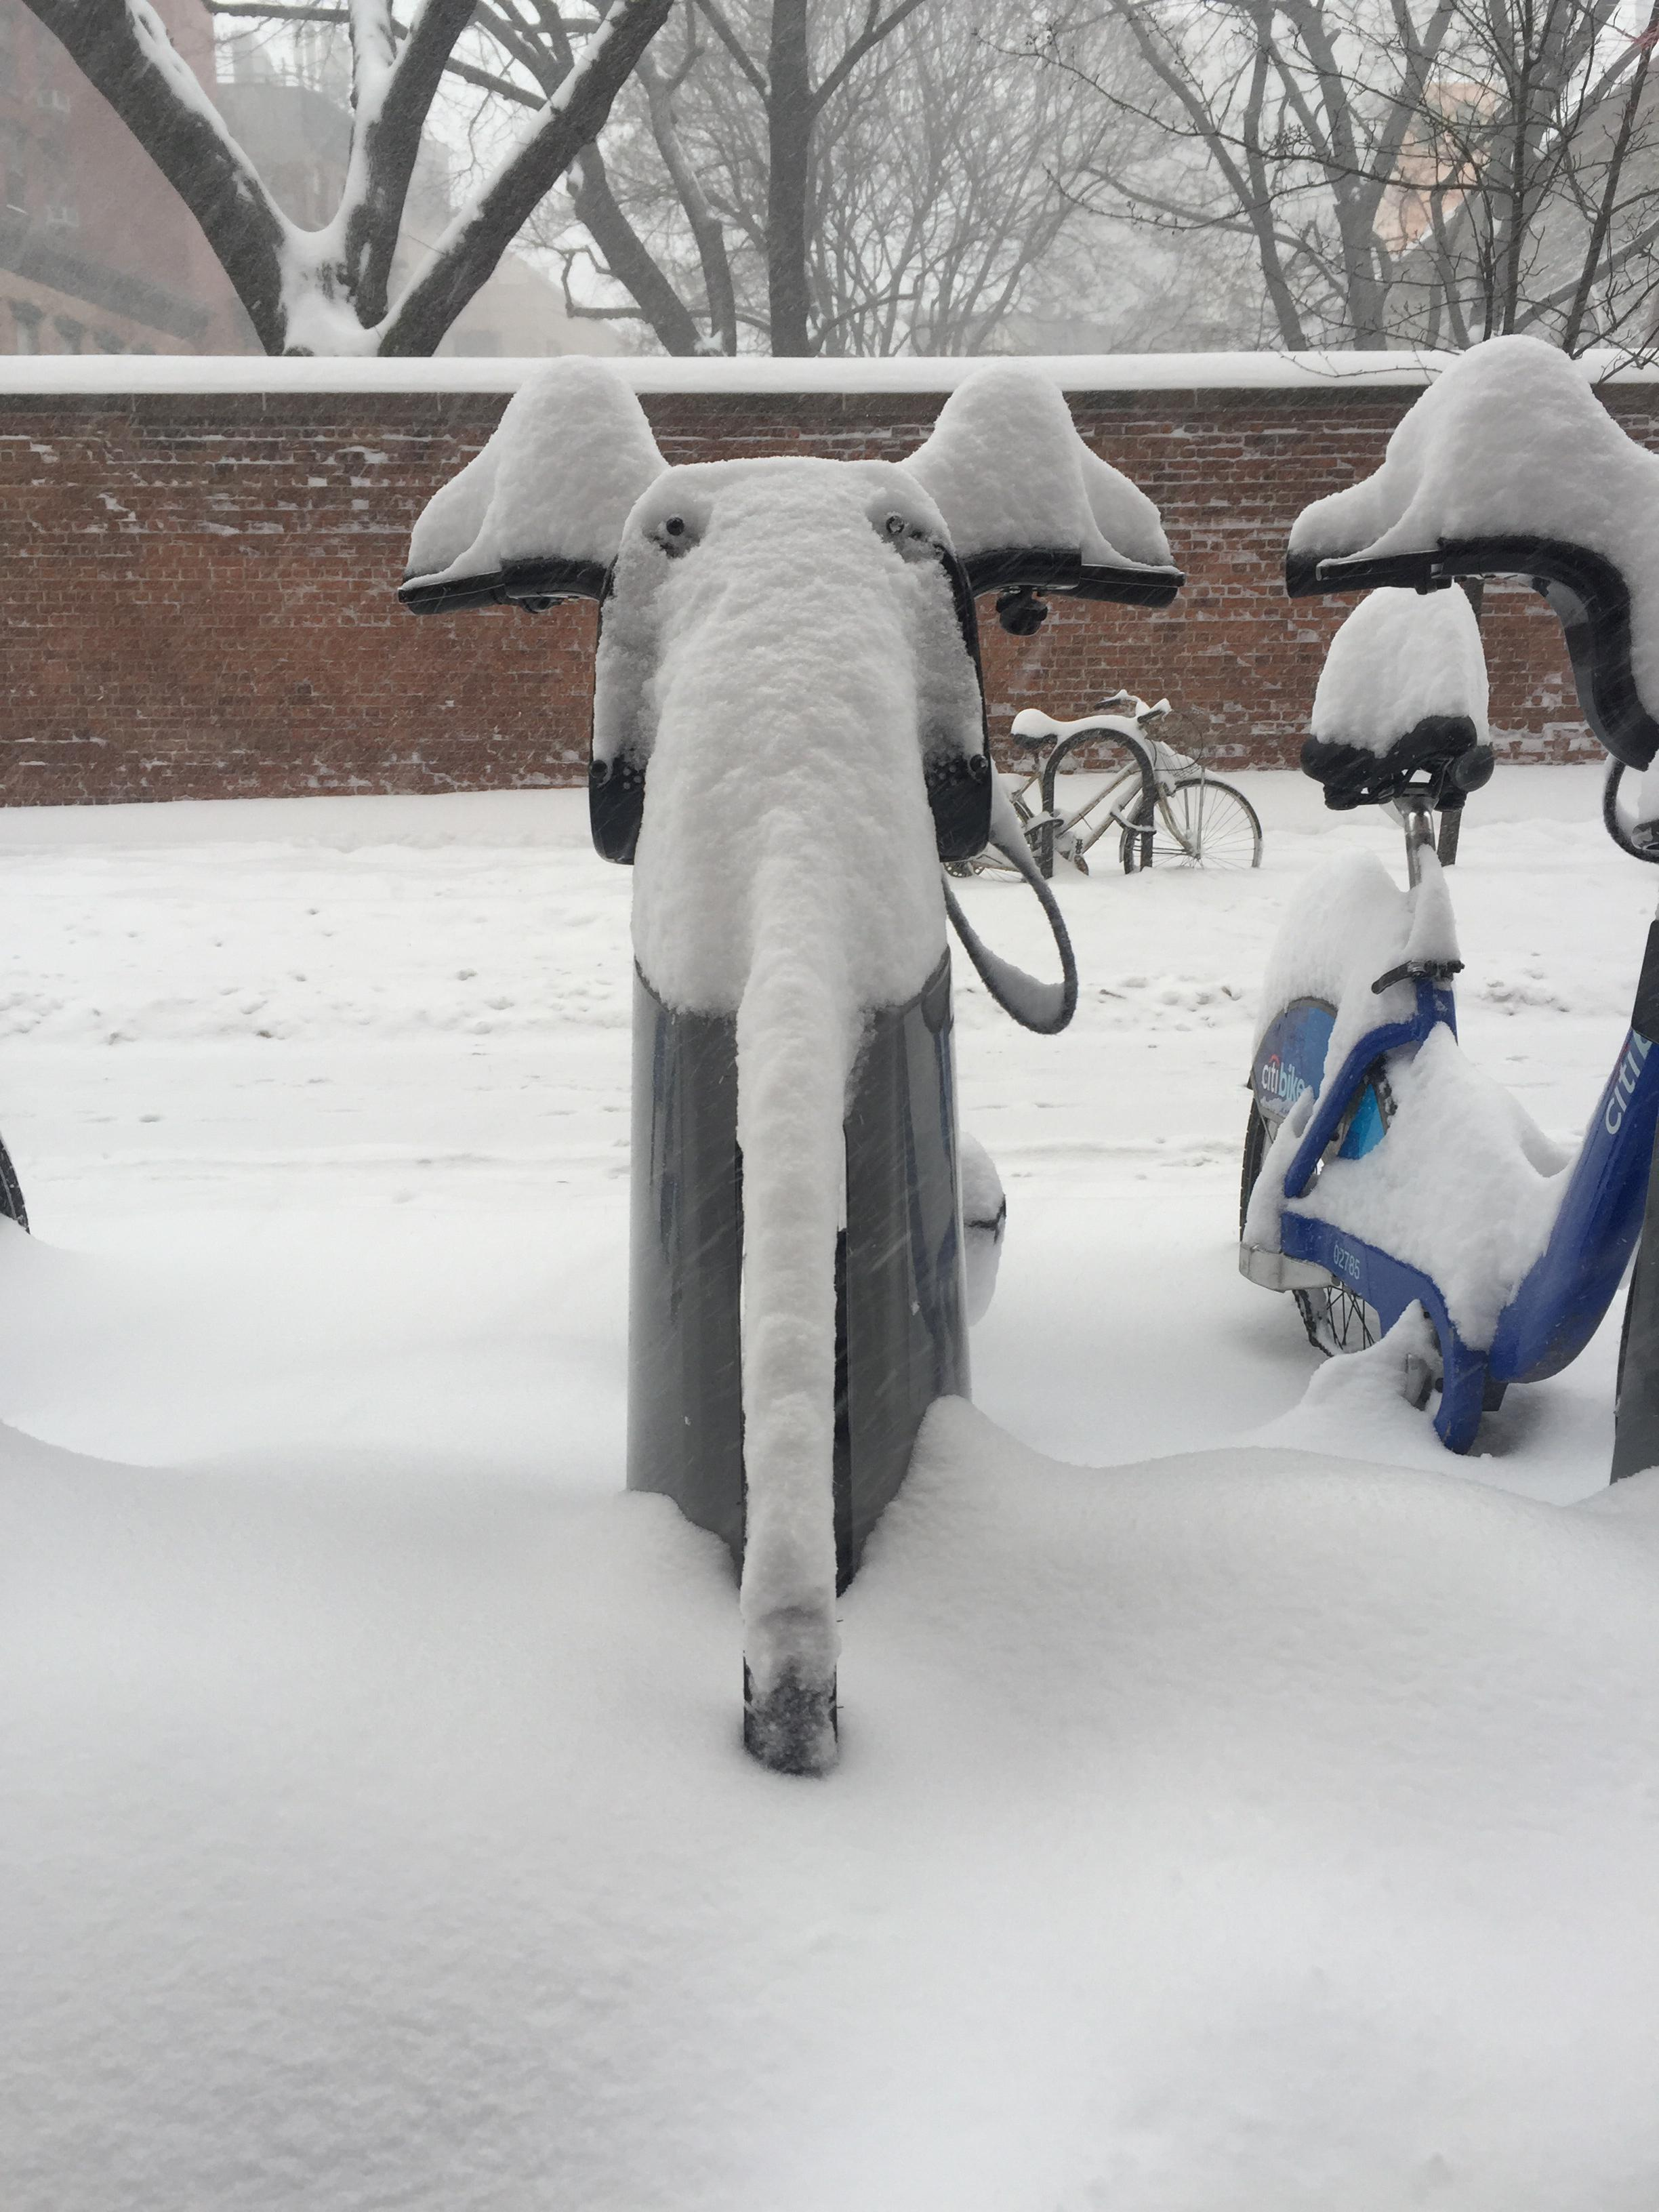 Blizzard turned this Citi Bike into an elephant.